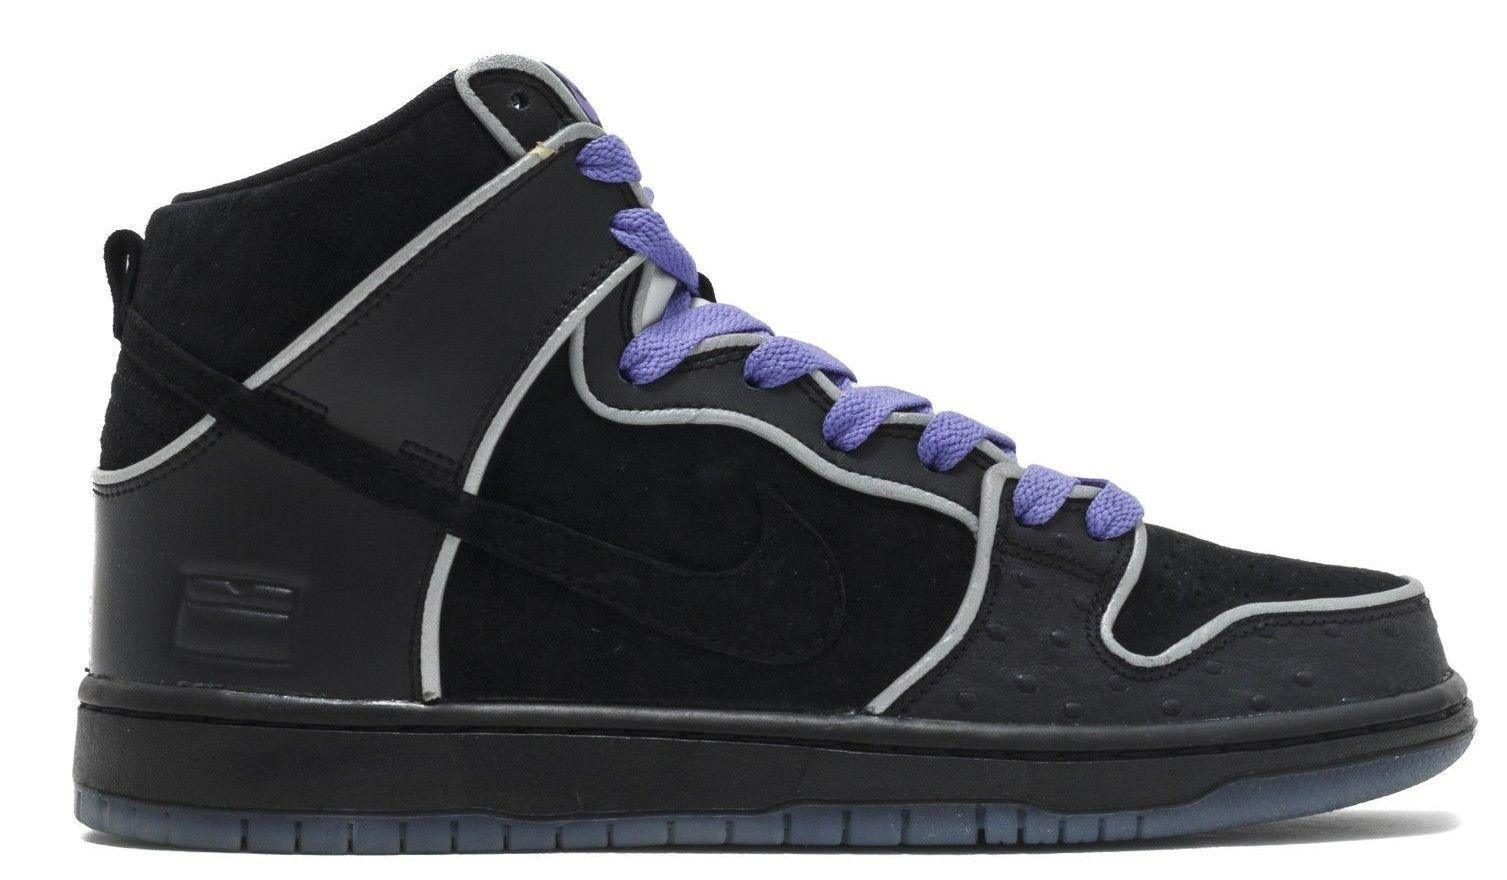 Nike DUNK HIGH ELITE SB Black White Purple Haze 833456-002 (639) Men's Shoes